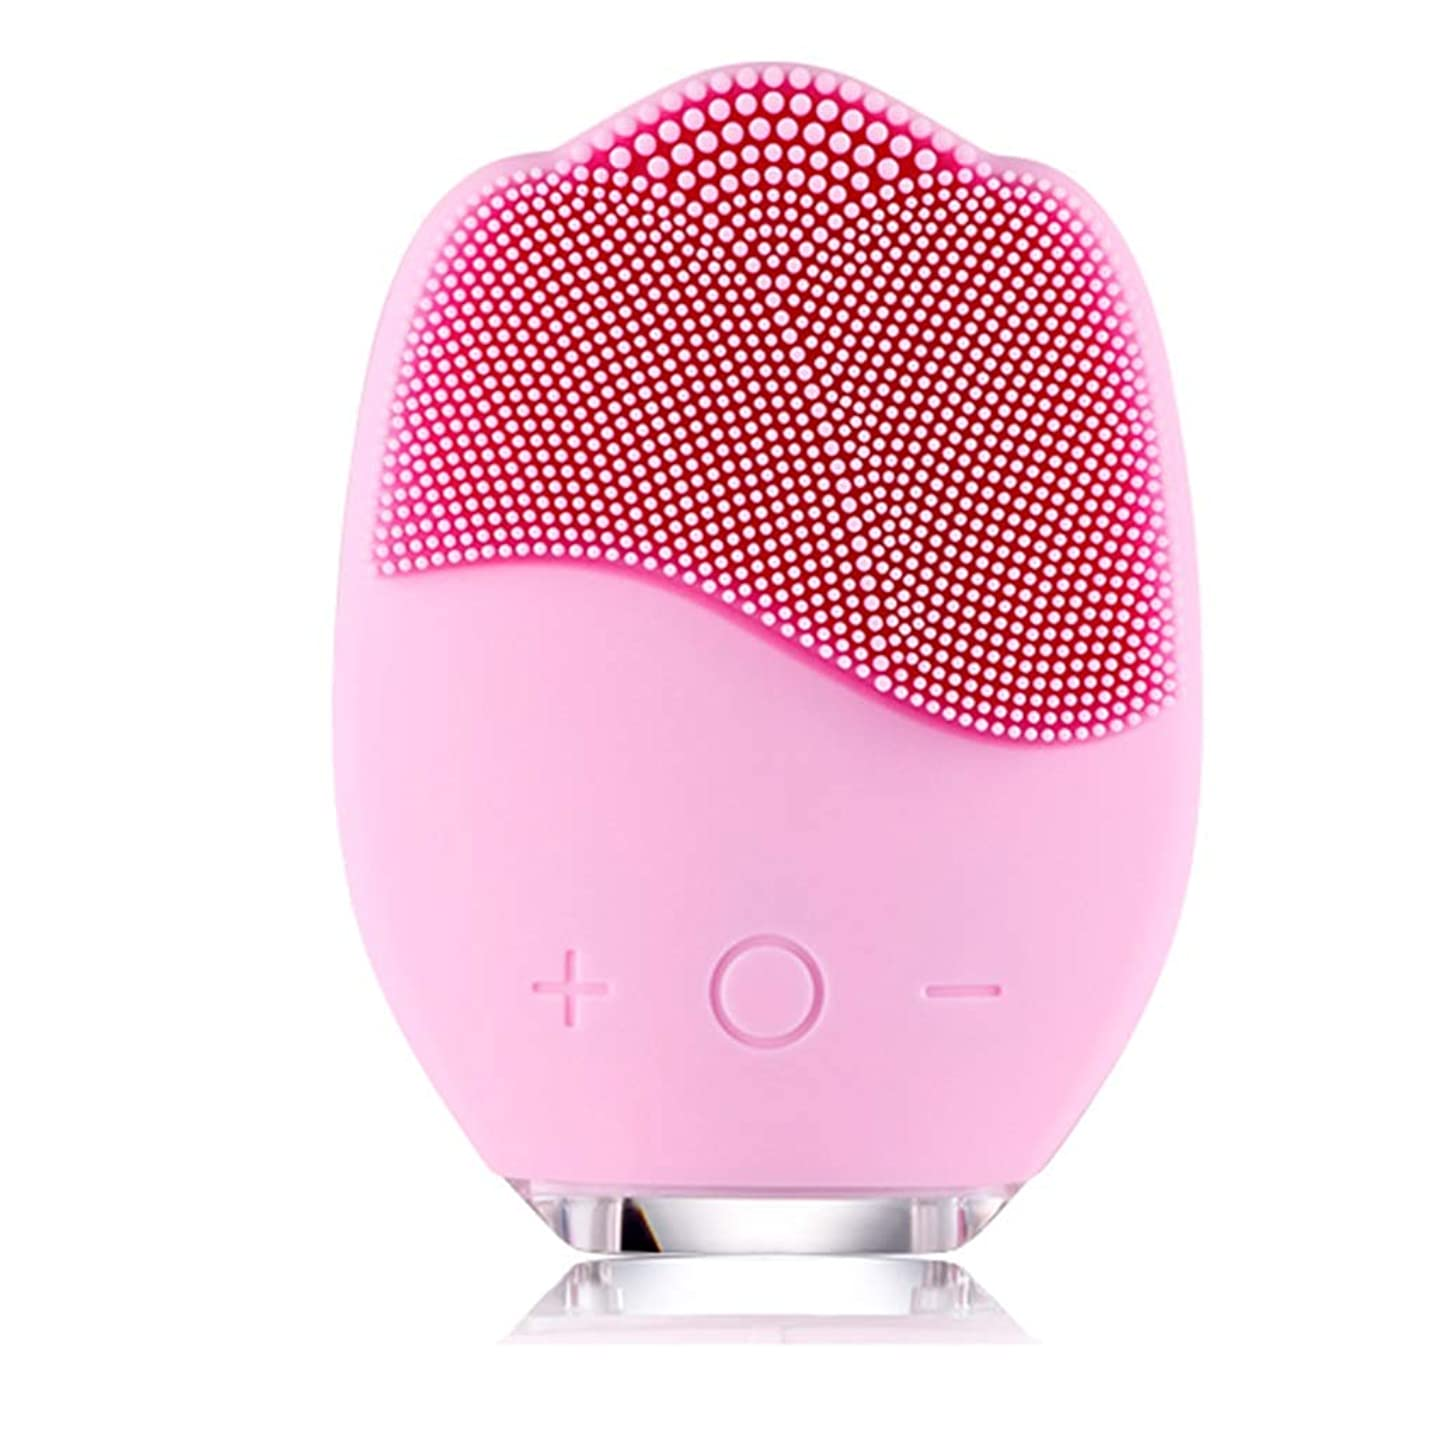 Facial cleansing brush Facial Cleaner, Electric Cleansing Instrument, Washing Machine Pore Cleaner, Cleansing Instrument, Long Brush Head, Soft, No Skin, Face Lifting, Firming Massage Cleansing